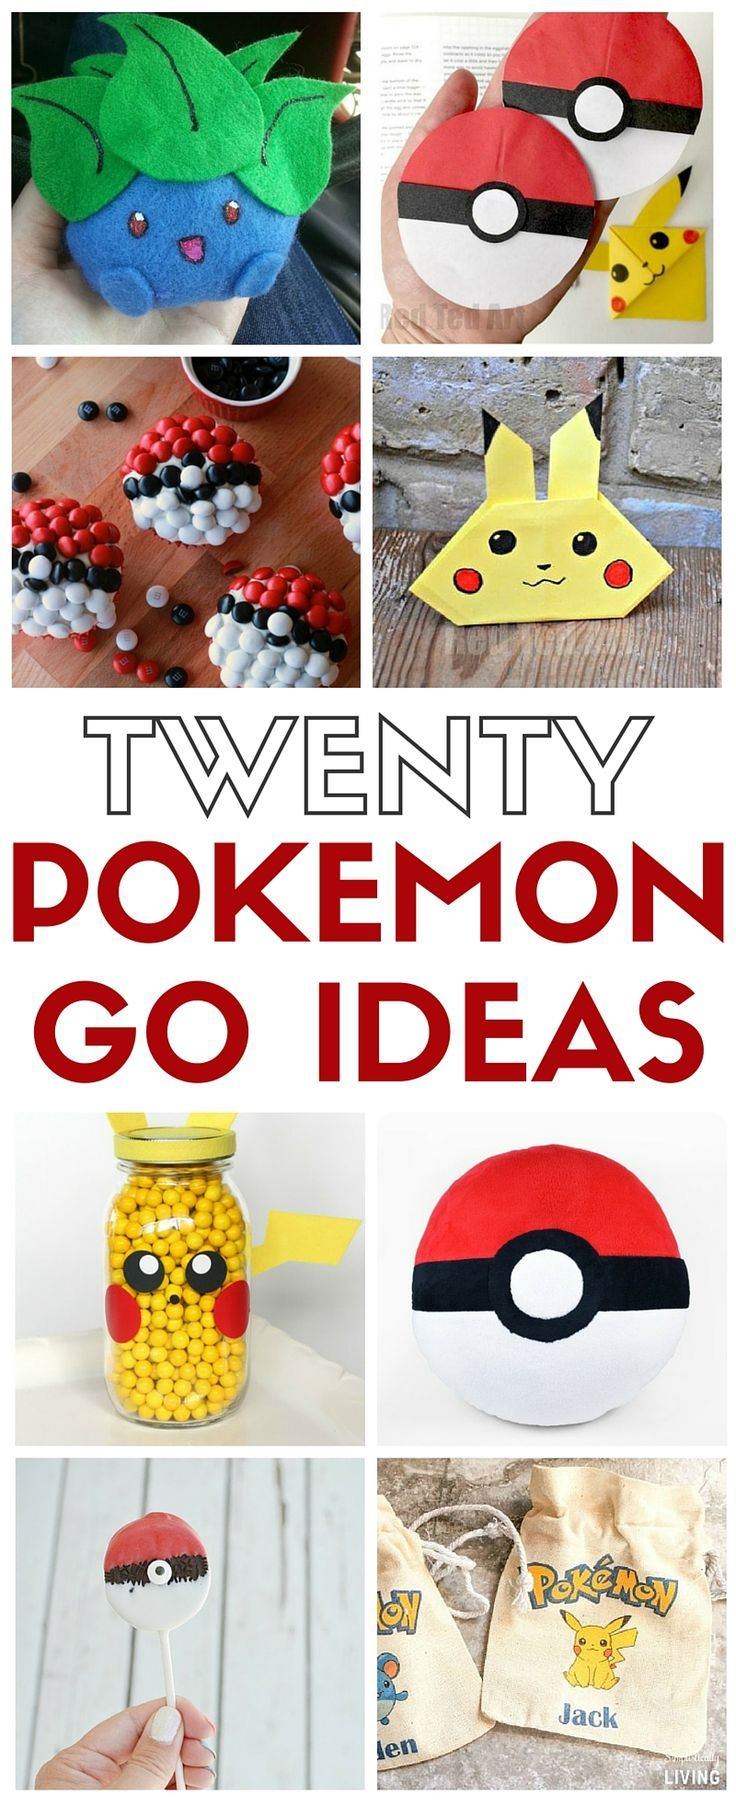 How To Make 20 Pokemon Go Craft Ideas Ideas For Kids Pokemon Go